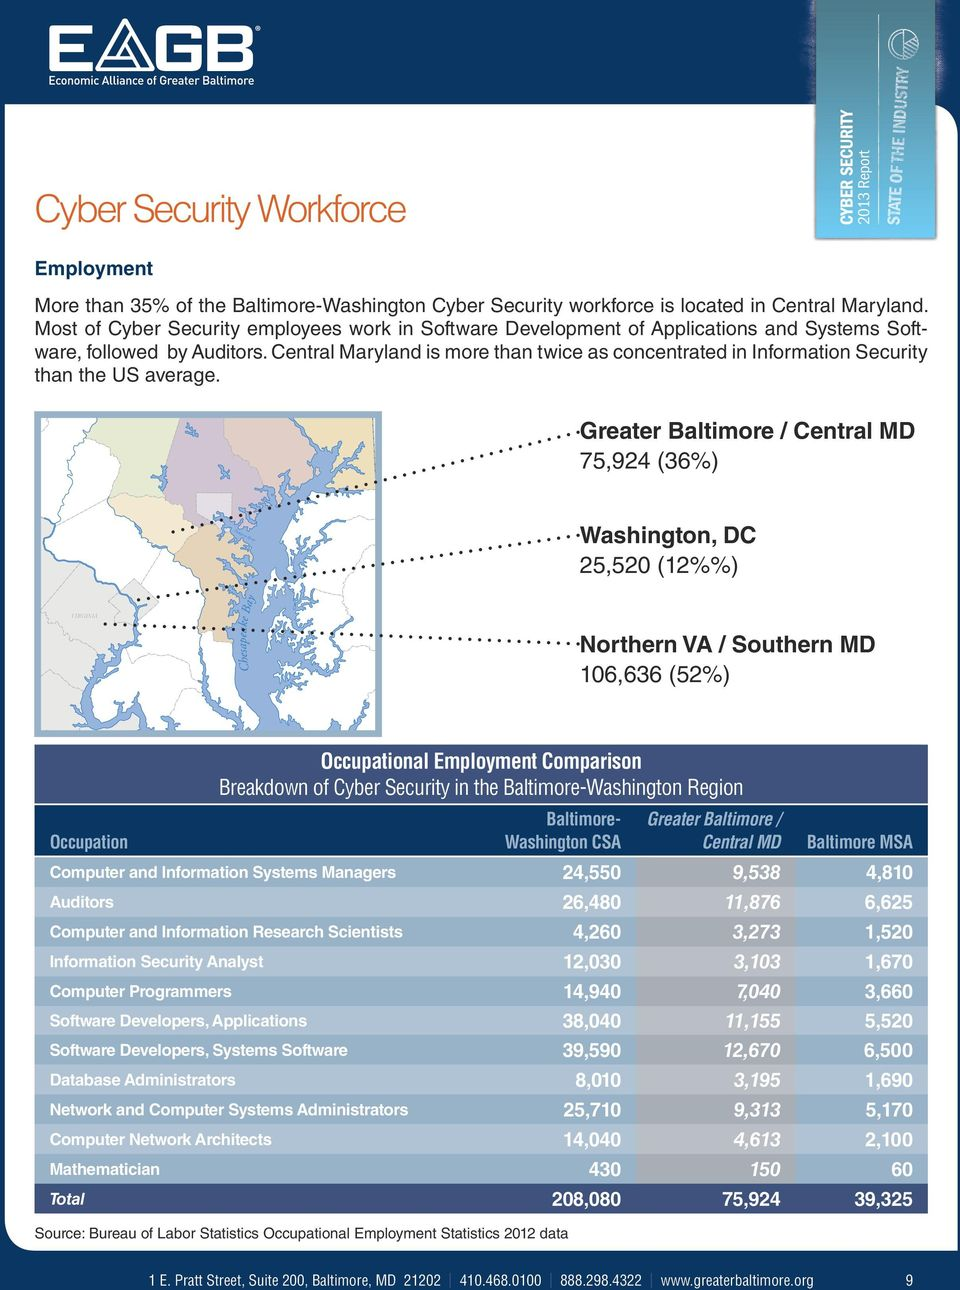 Central Maryland is more than twice as concentrated in Information Security than the US average.